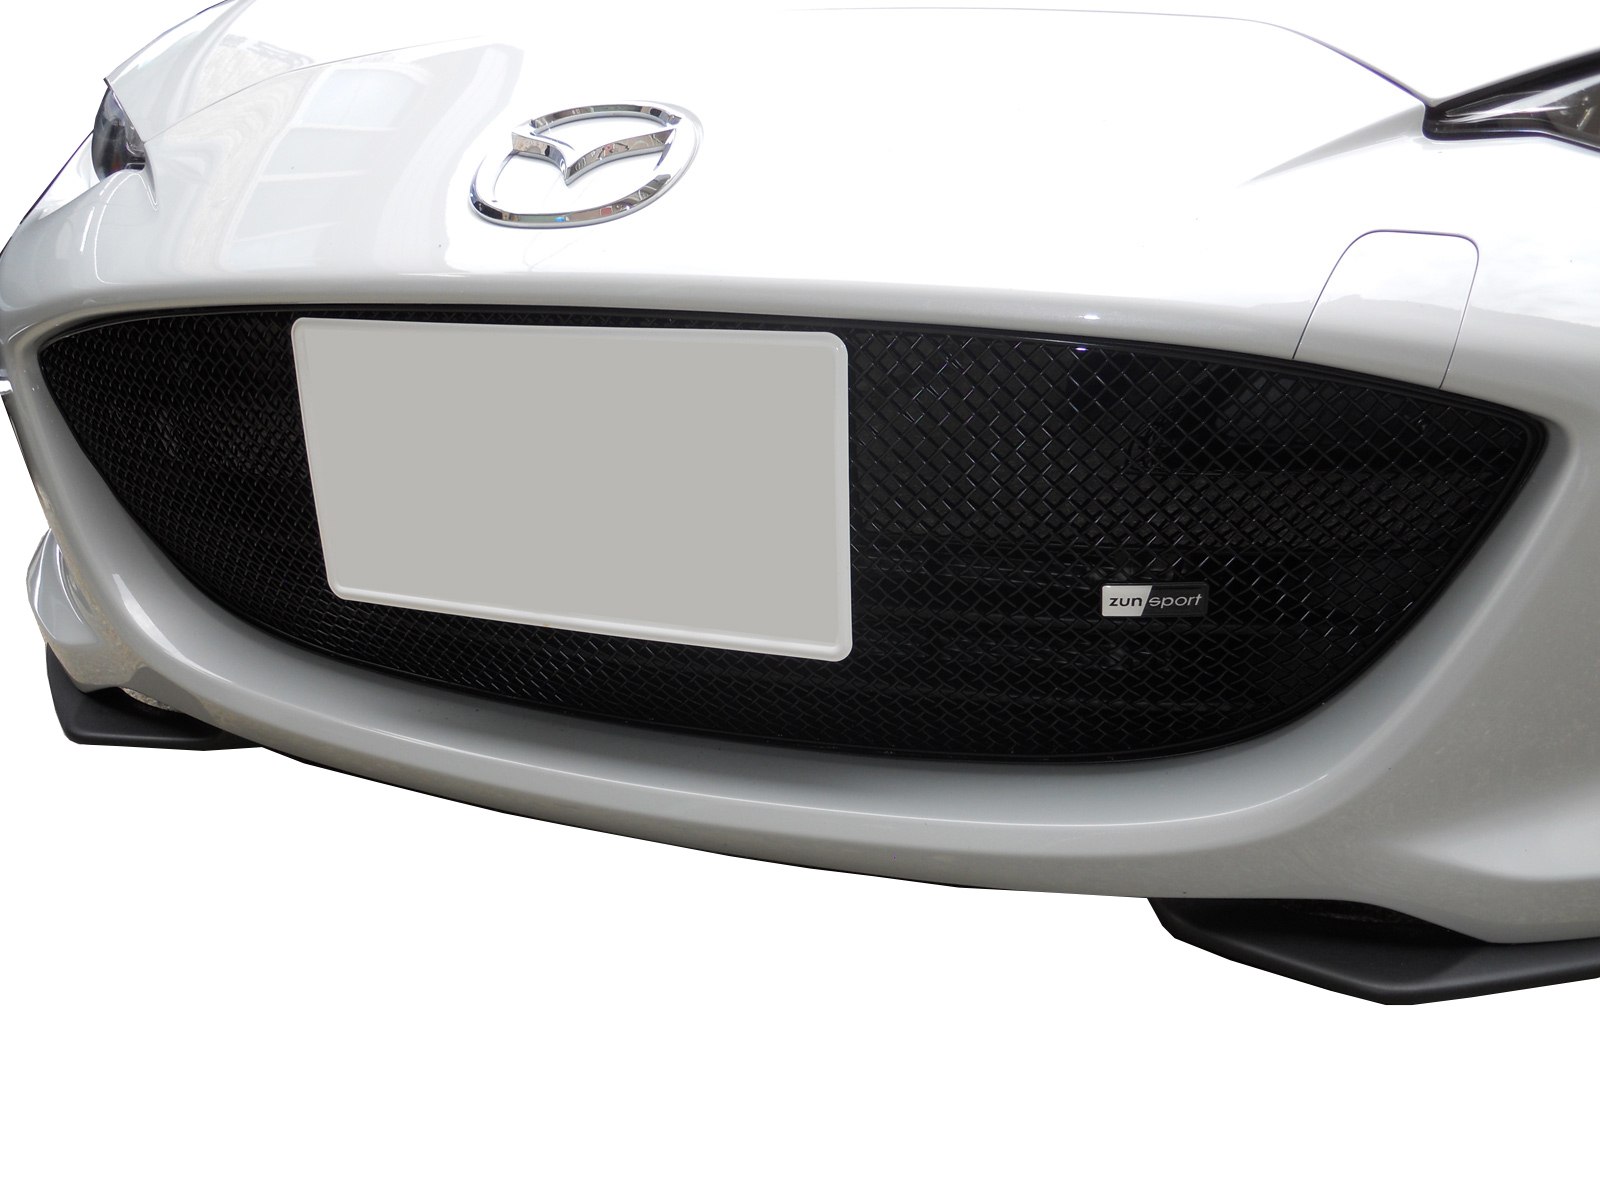 Front Grille Set Zunsport Compatible With Honda S2000 2004-2009 Black finish